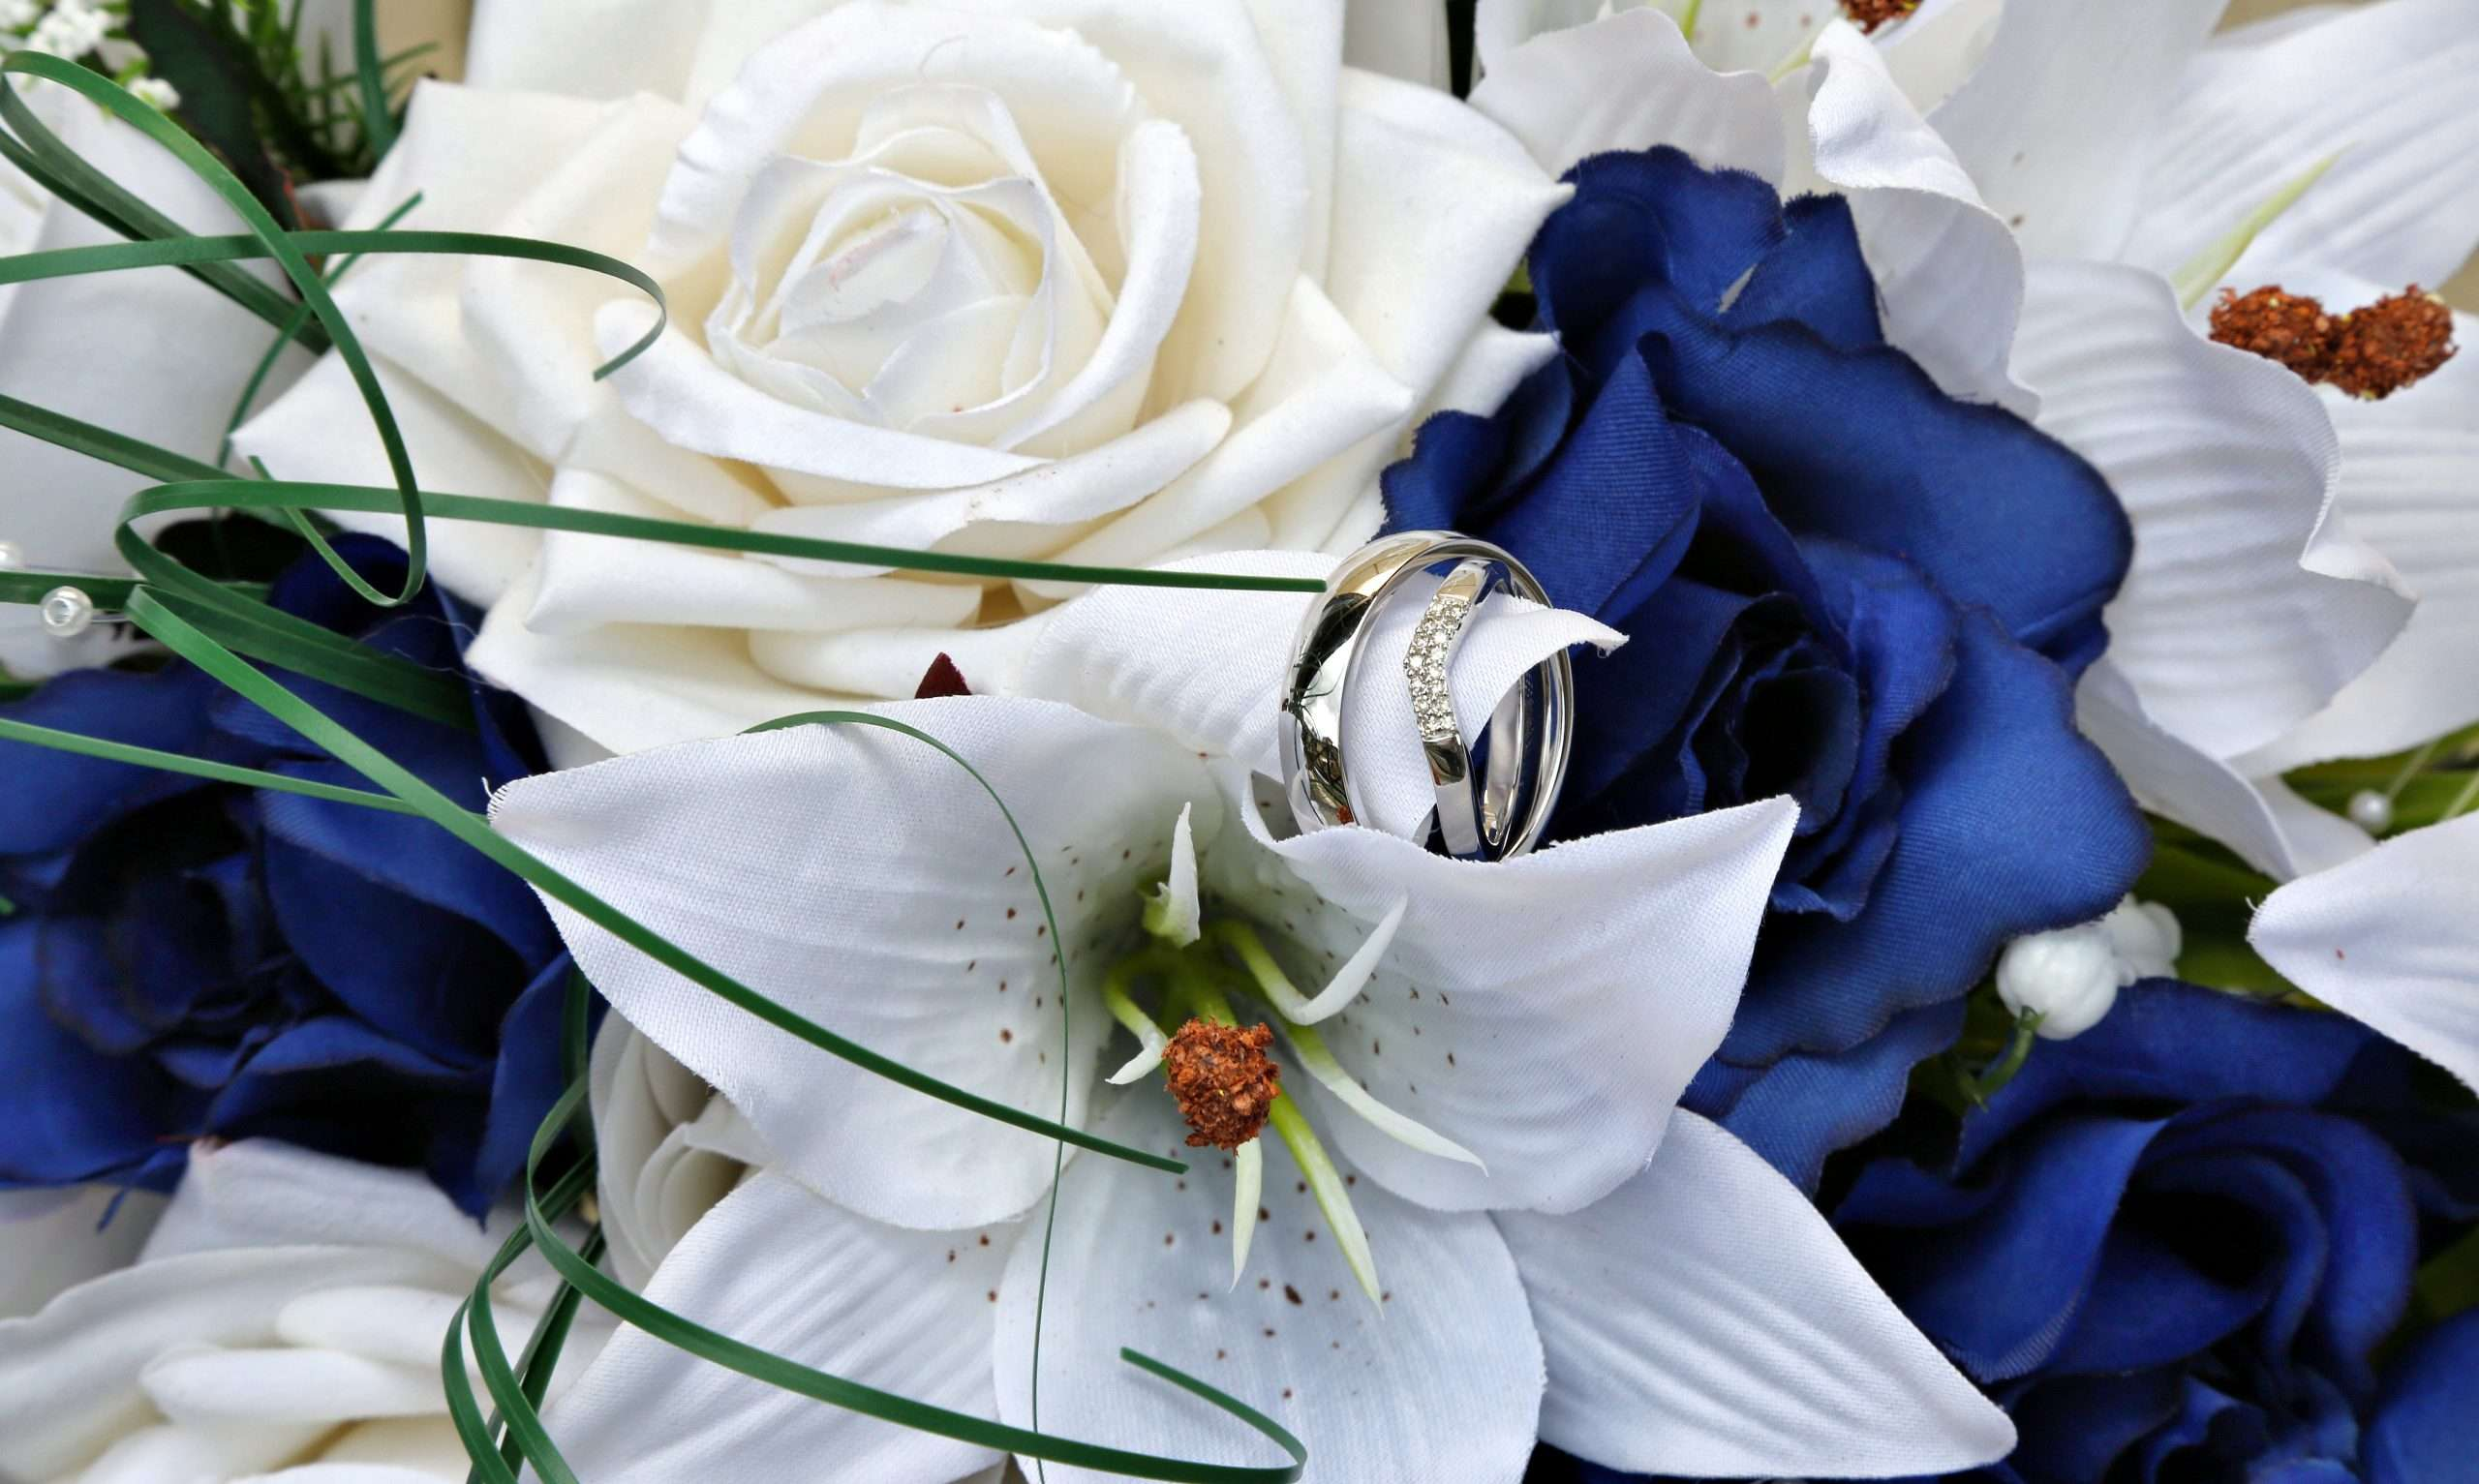 Close up of fake blue and white flowers with Darren and Lisa's wedding rings on one of the petals